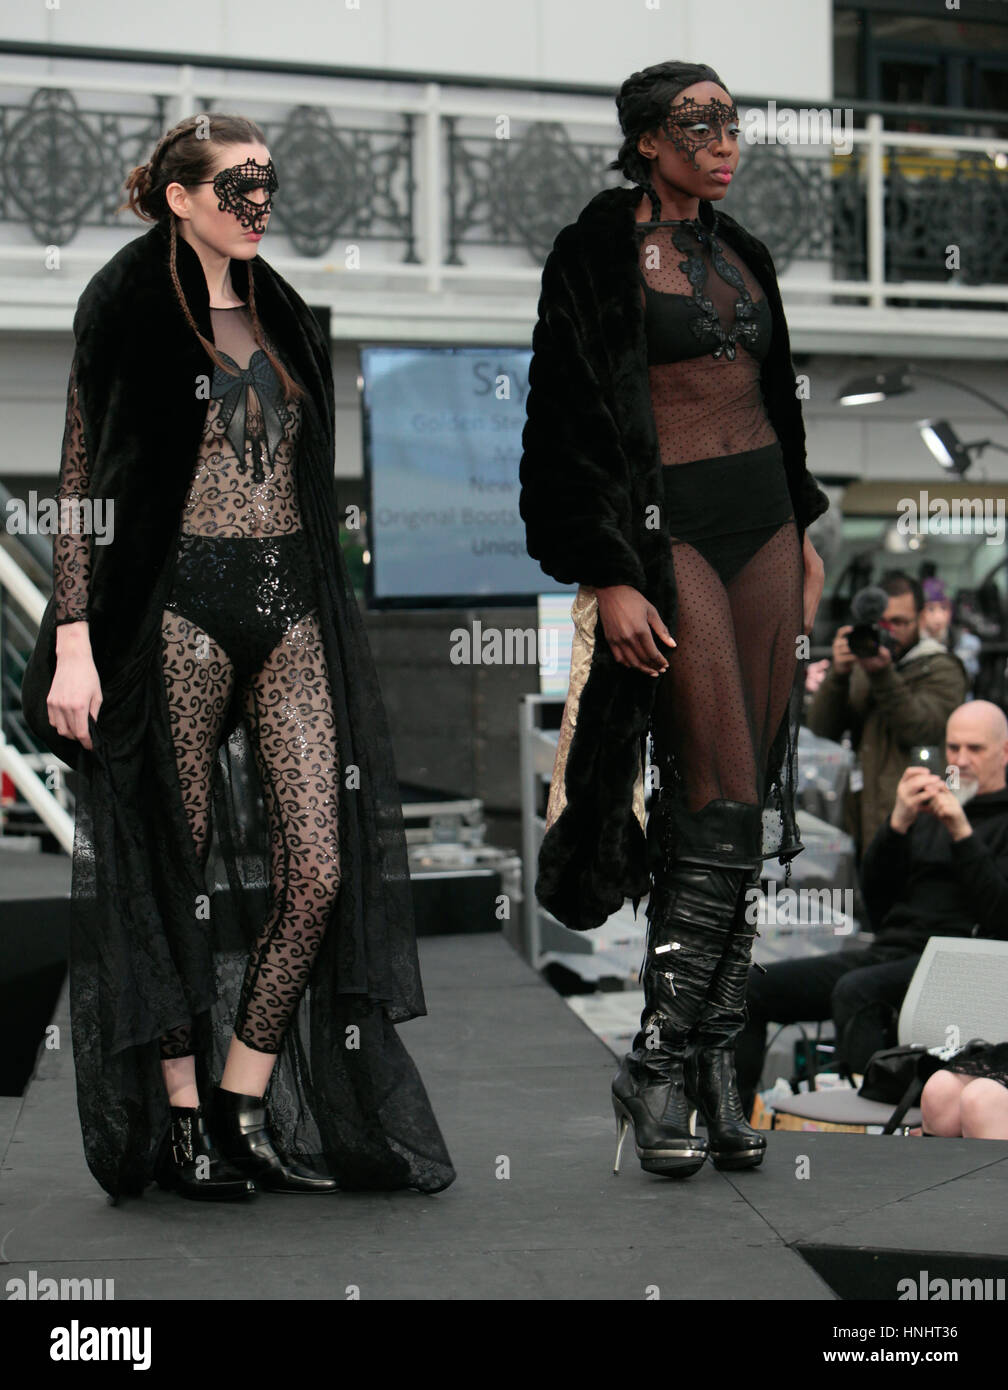 London UK,13 February 2017 The London edge ,alternative clothing and accessory show come to an end today after having - Stock Image